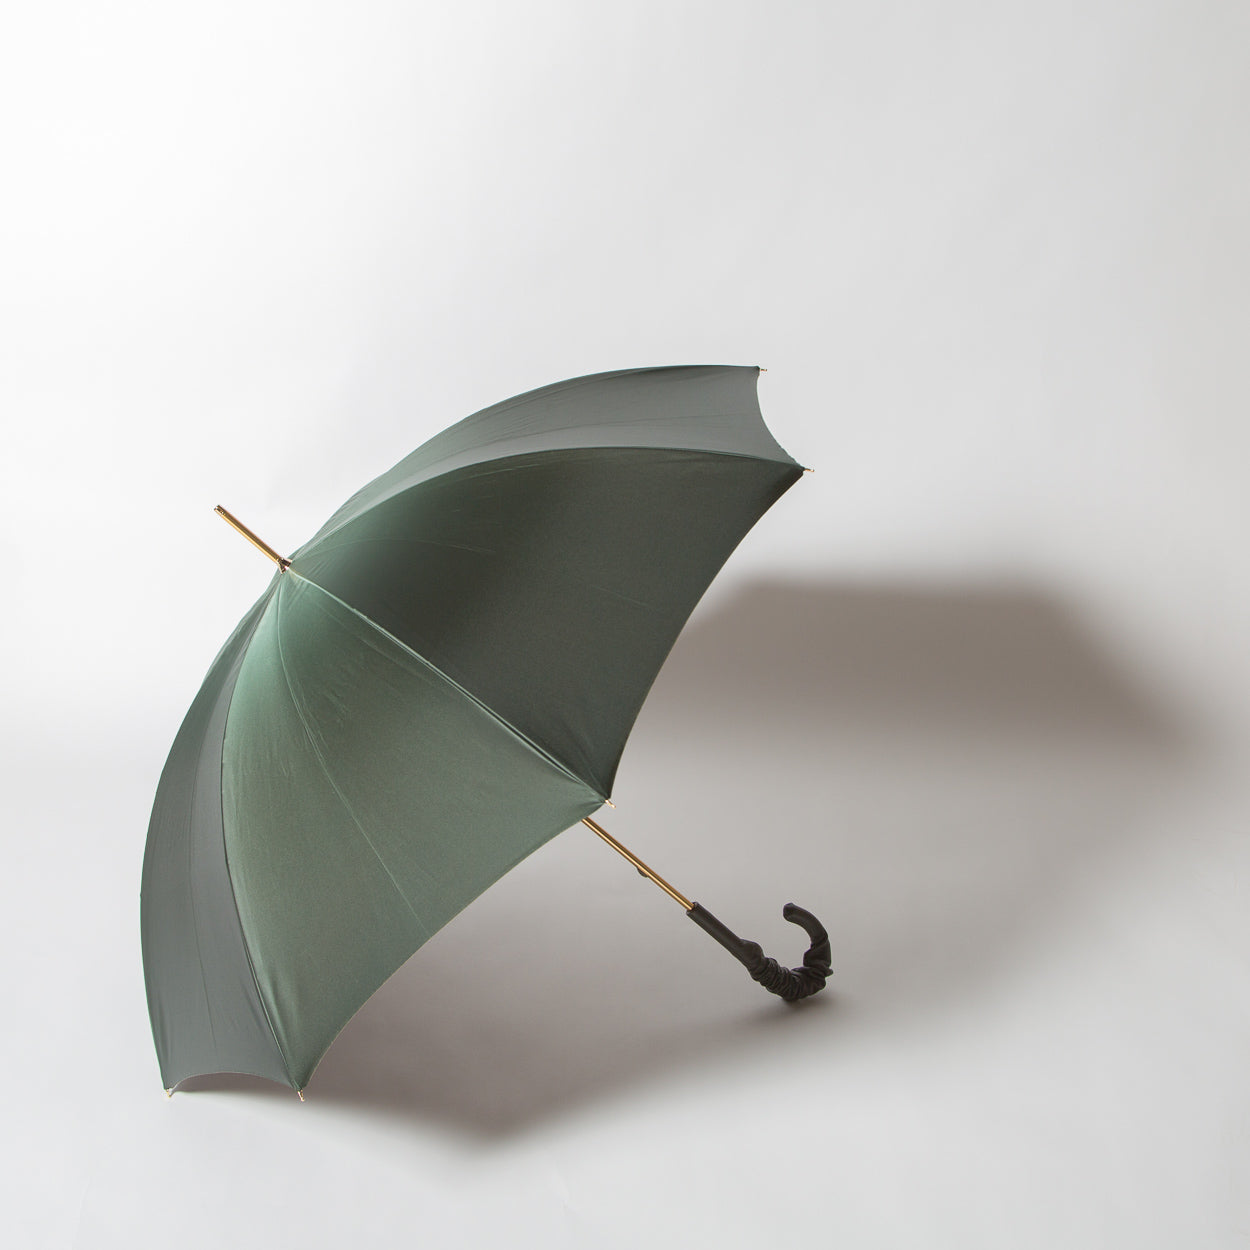 Leopard Print Olive Green Umbrella, double cloth